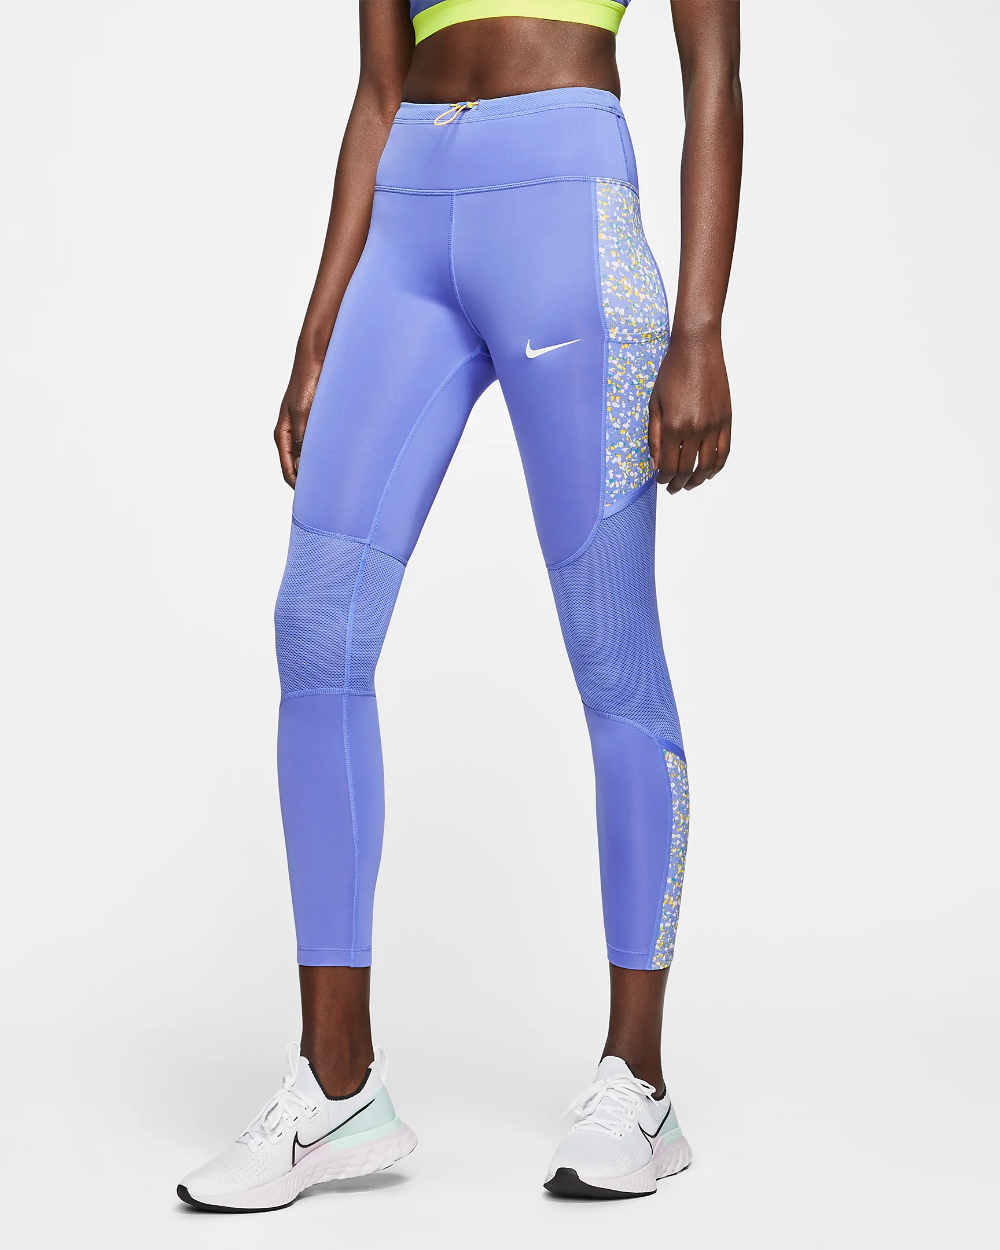 Nike Icon Clash Fast Women's Running Tights. in